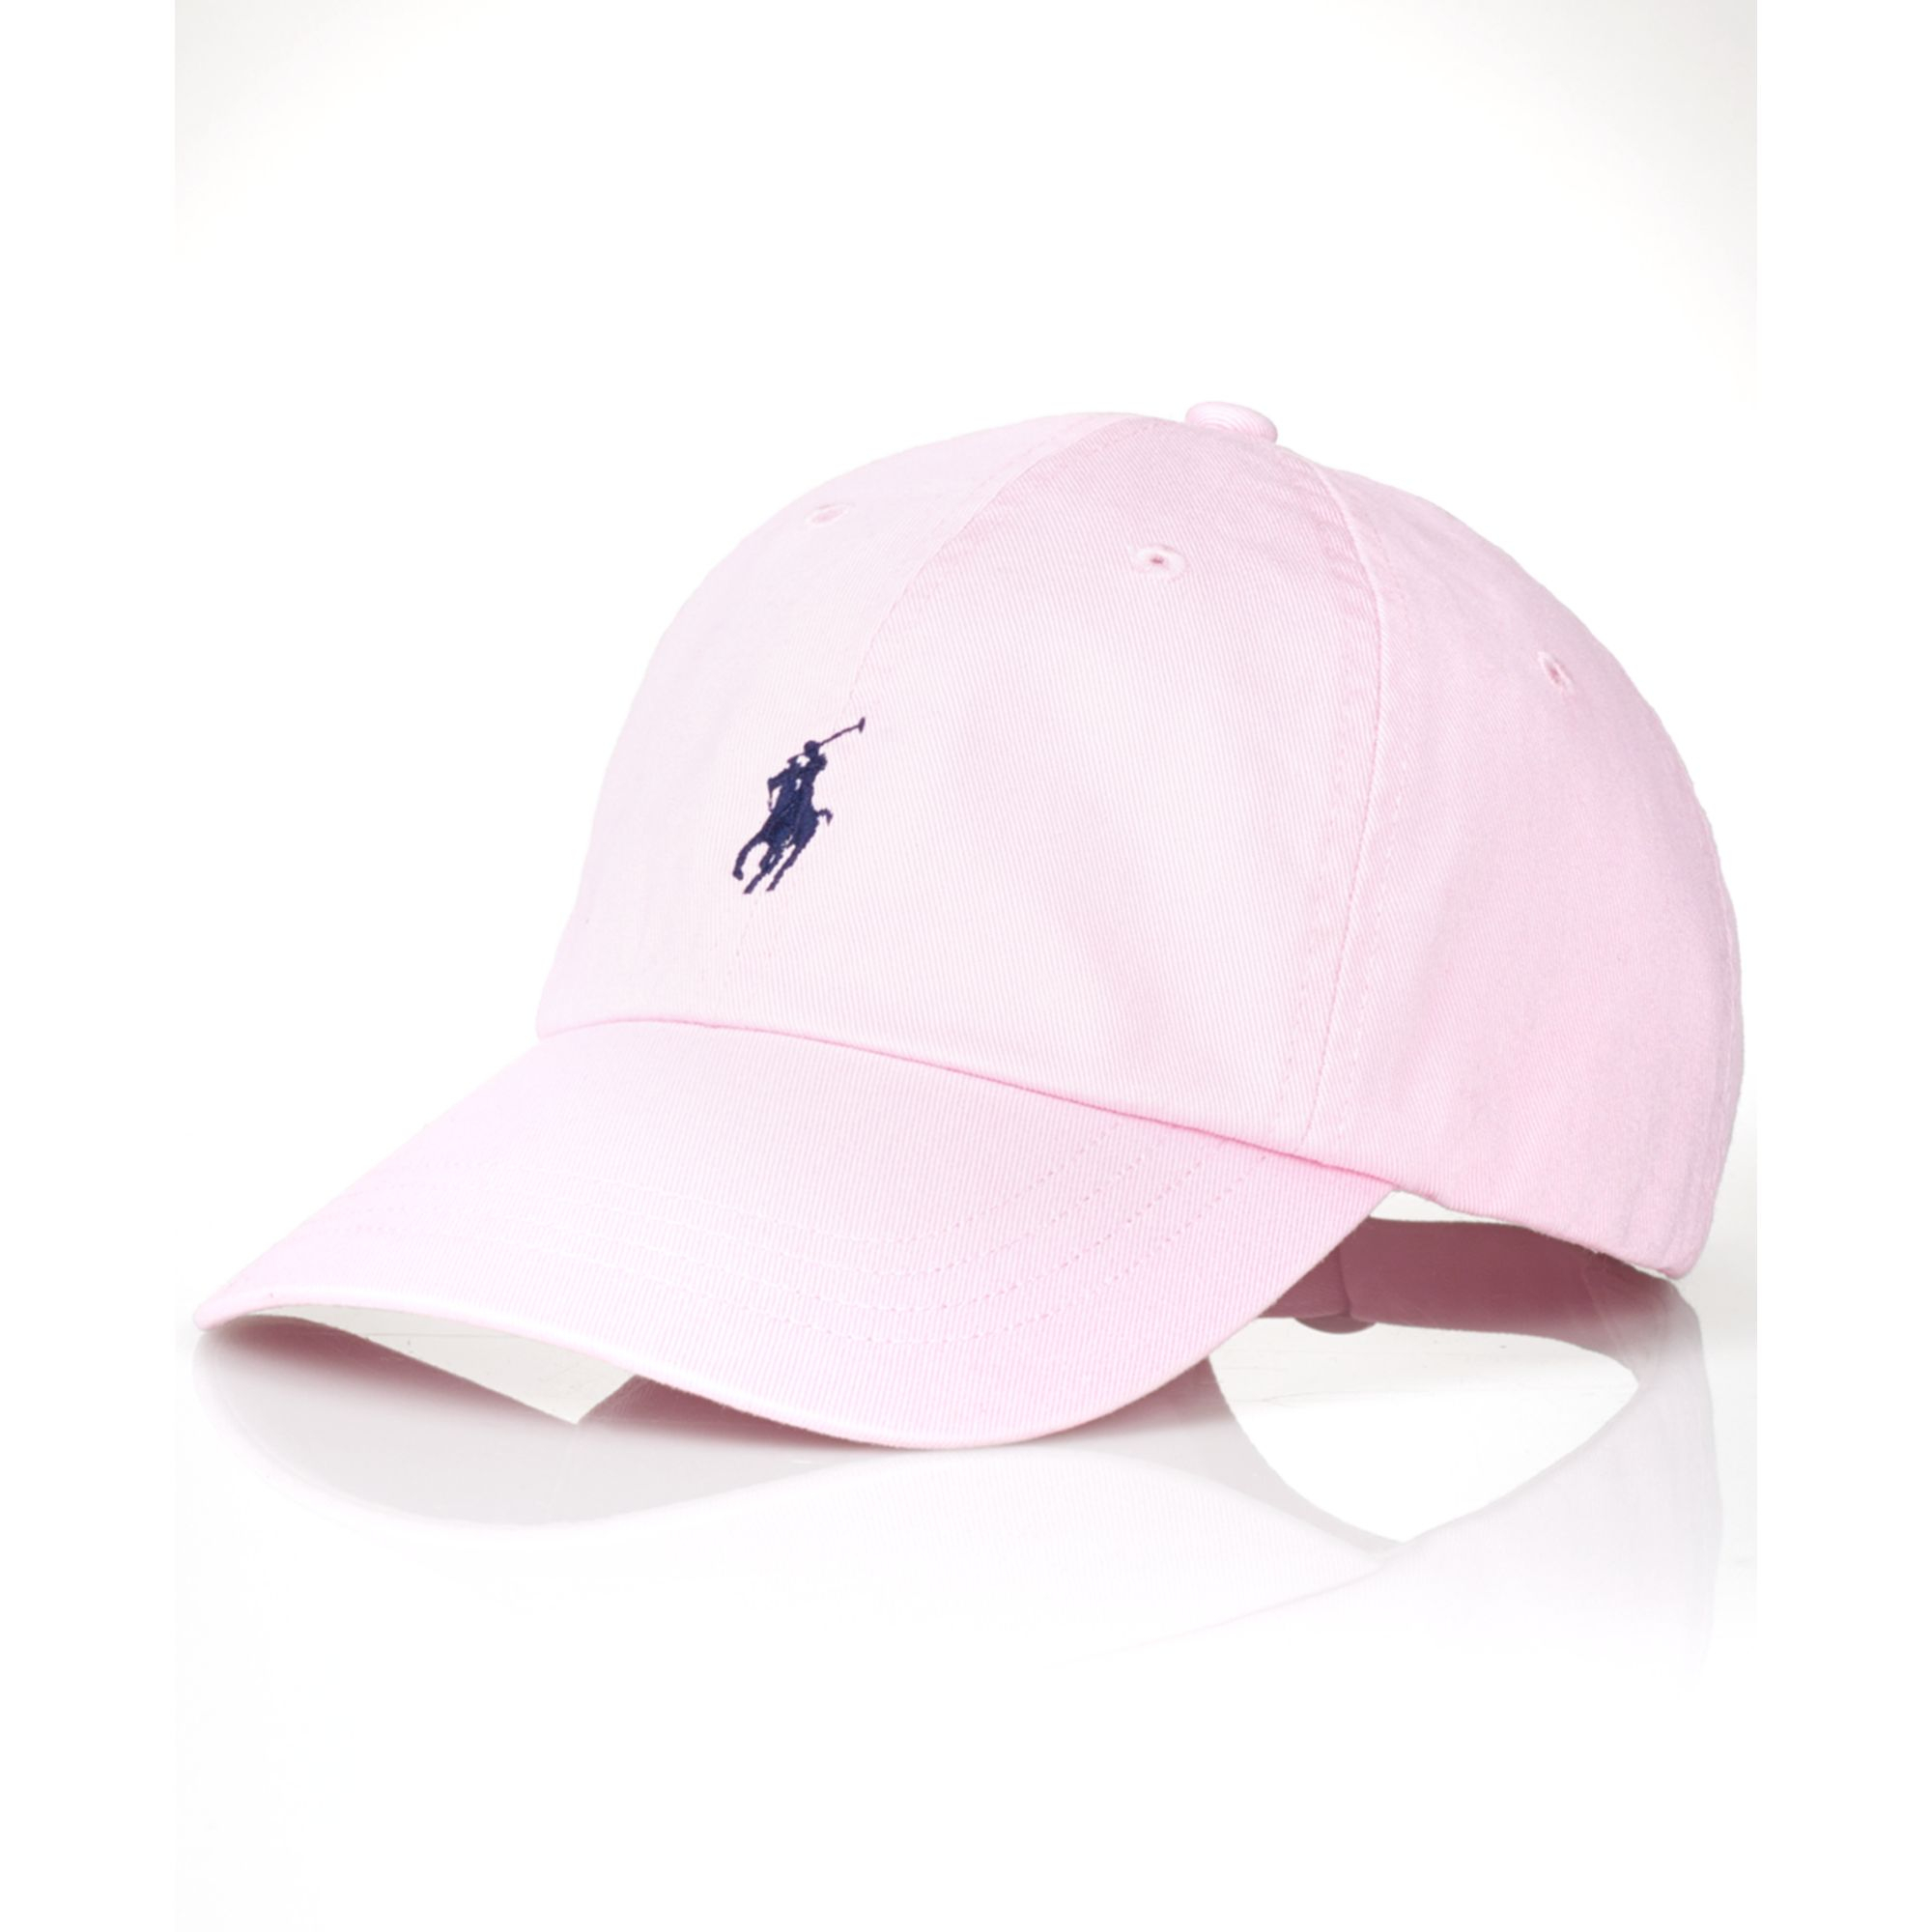 3445b0f5b6b5 Lyst - Ralph Lauren Polo Classic Chino Sports Cap in Pink for Men